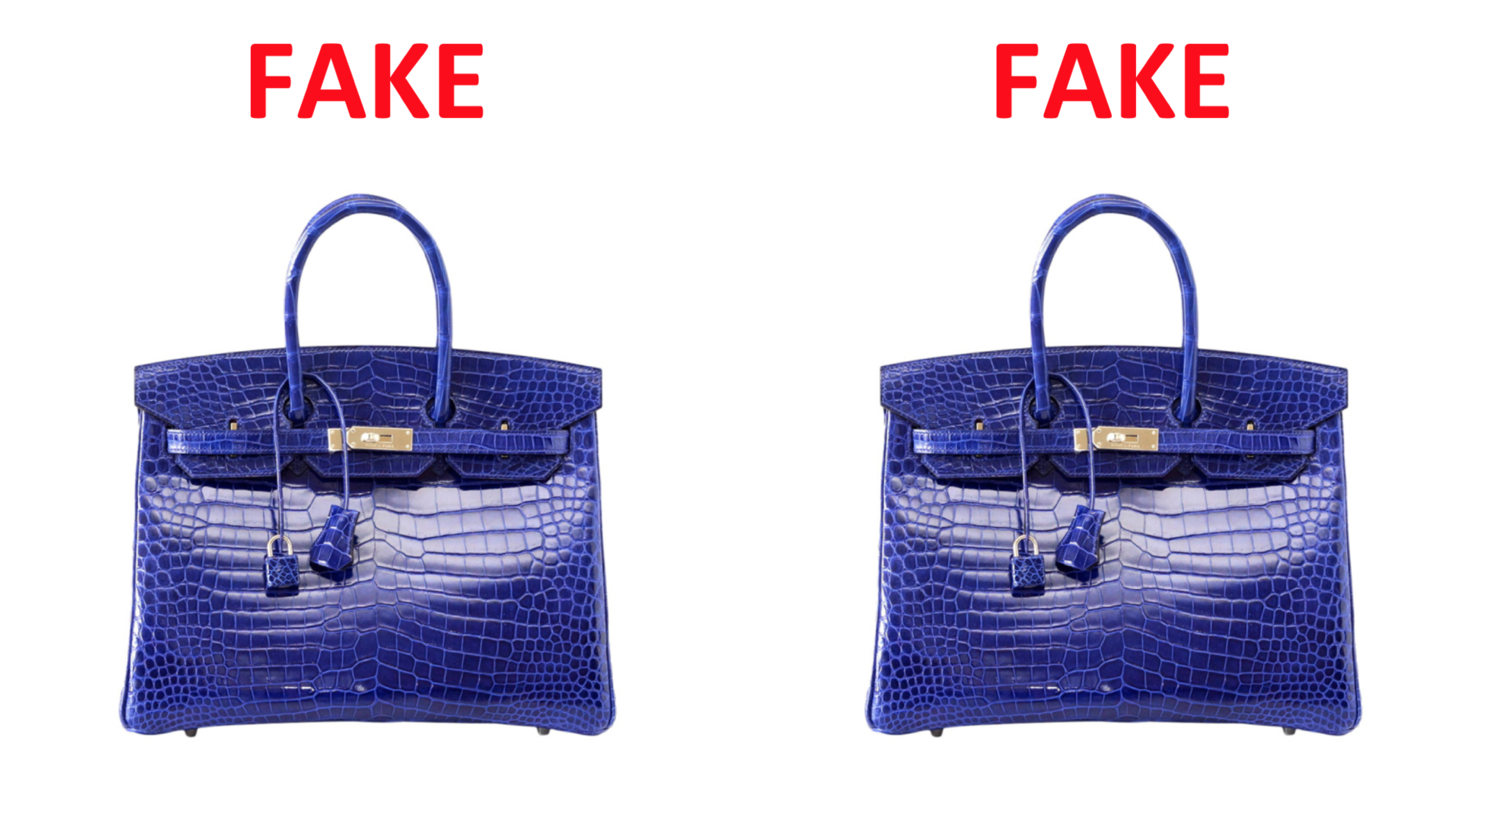 A New Trend in Counterfeiting is Letting Large Numbers of